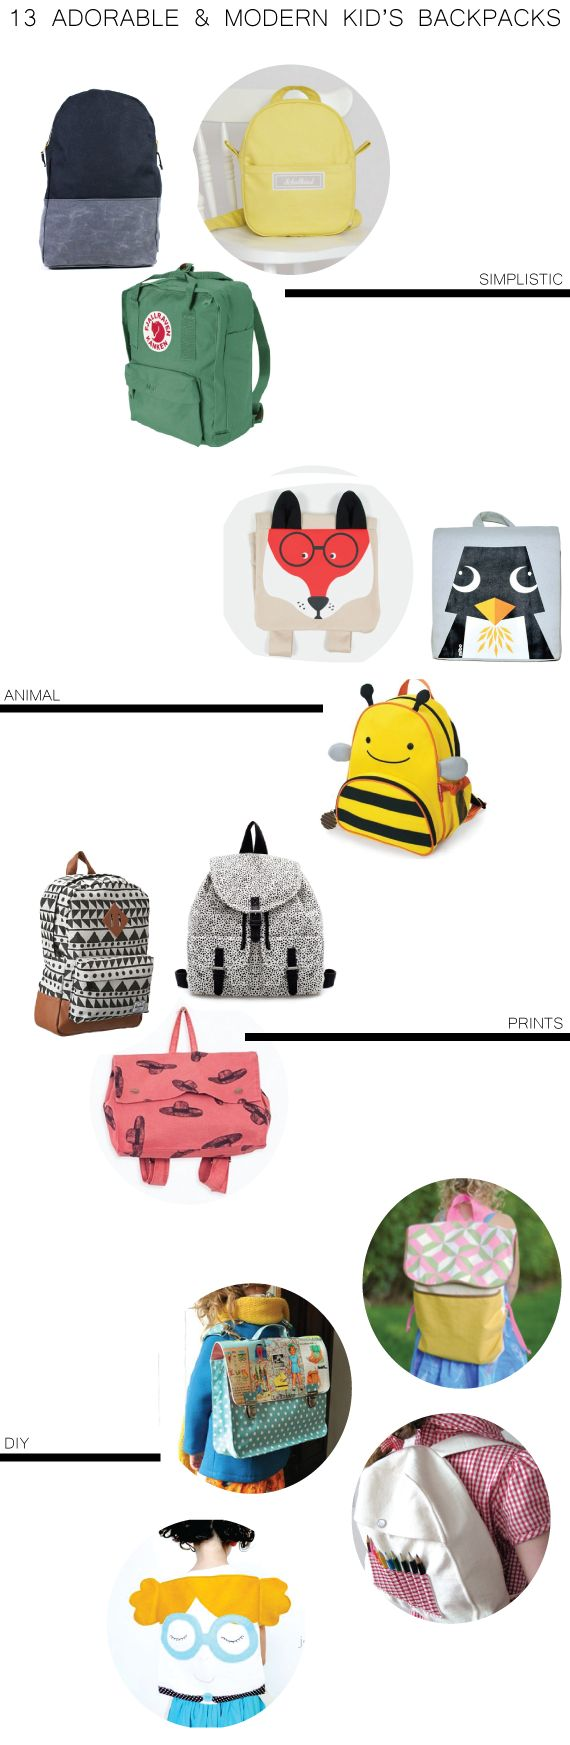 Adorable and Modern Kid's Backpacks